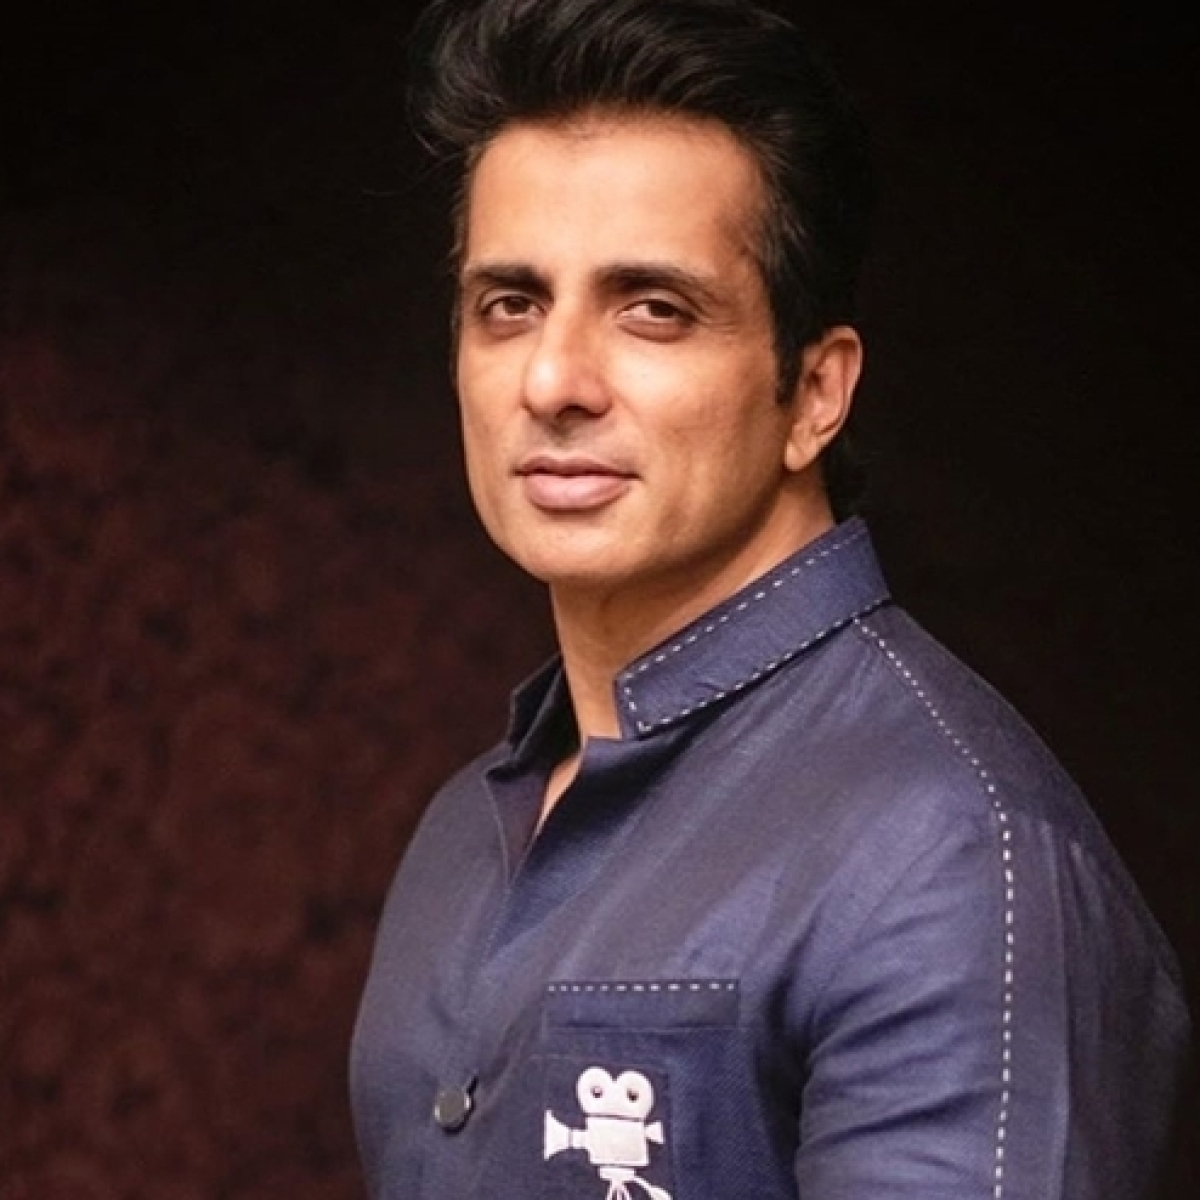 After helping migrant workers, Sonu Sood helps people affected by Cyclone Nisarga